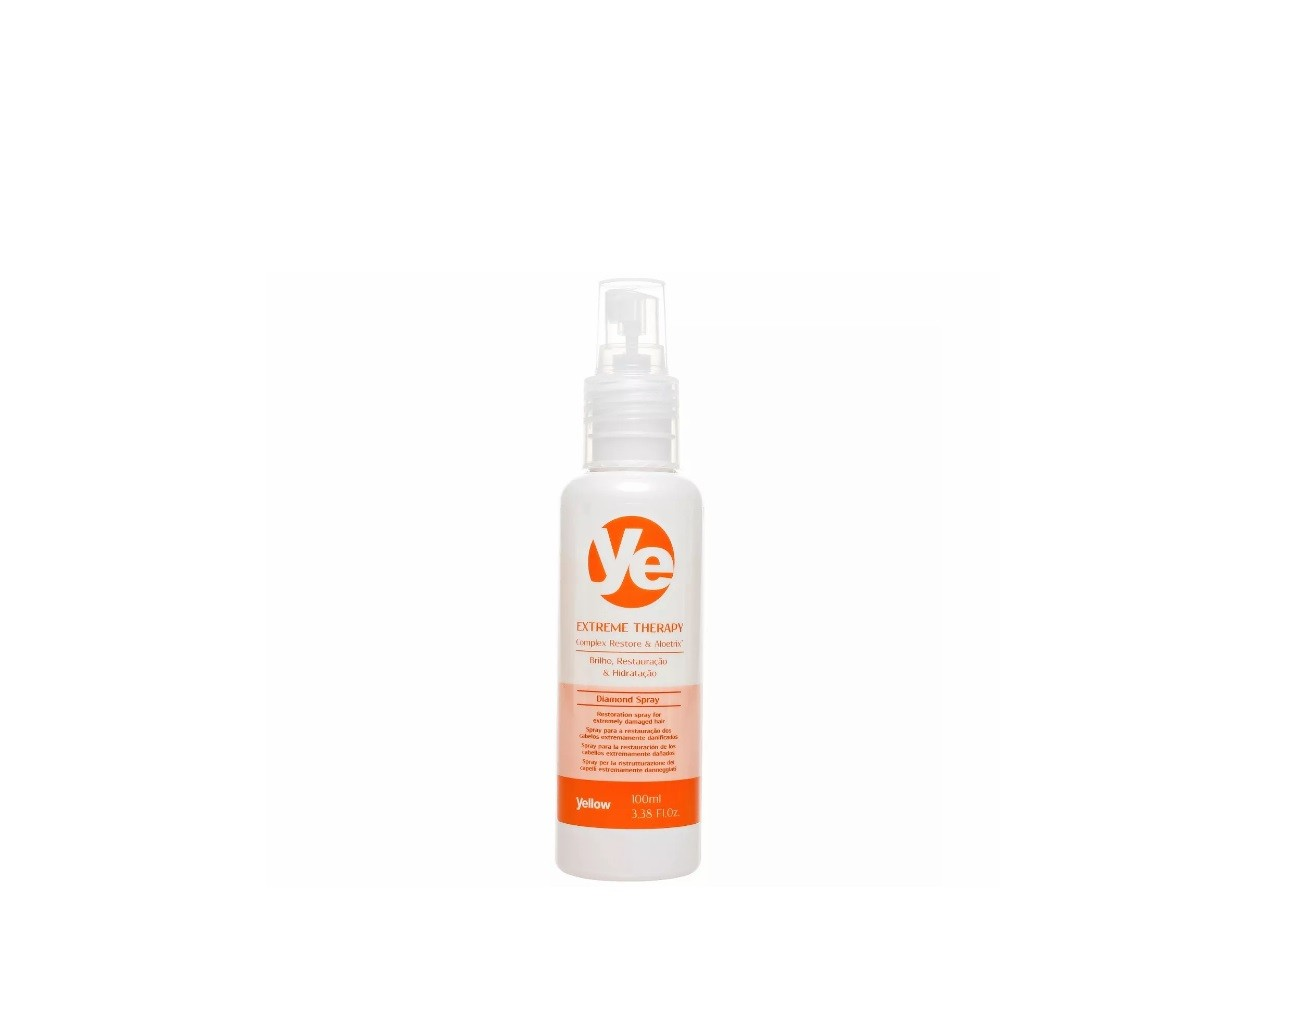 Yellow Ye Extreme Therapy Diamante Spray 100ml